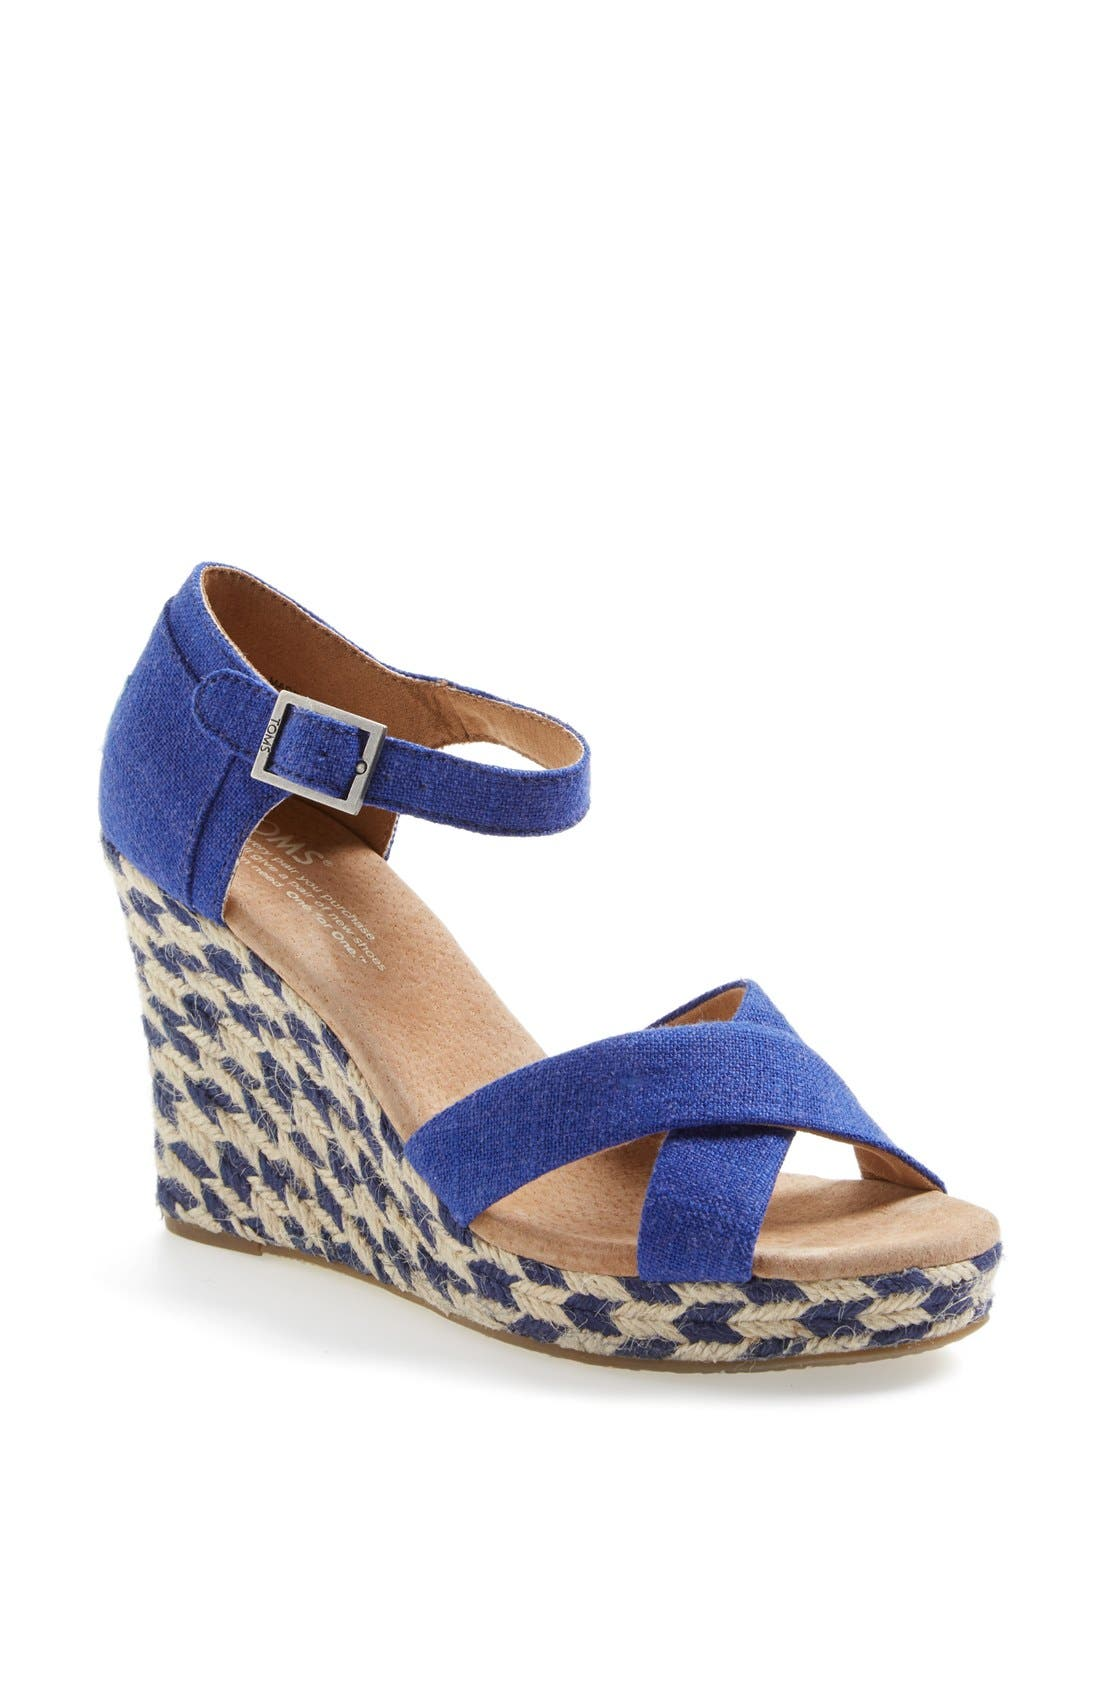 Alternate Image 1 Selected - TOMS 'Mixed Rope' Wedge Sandal